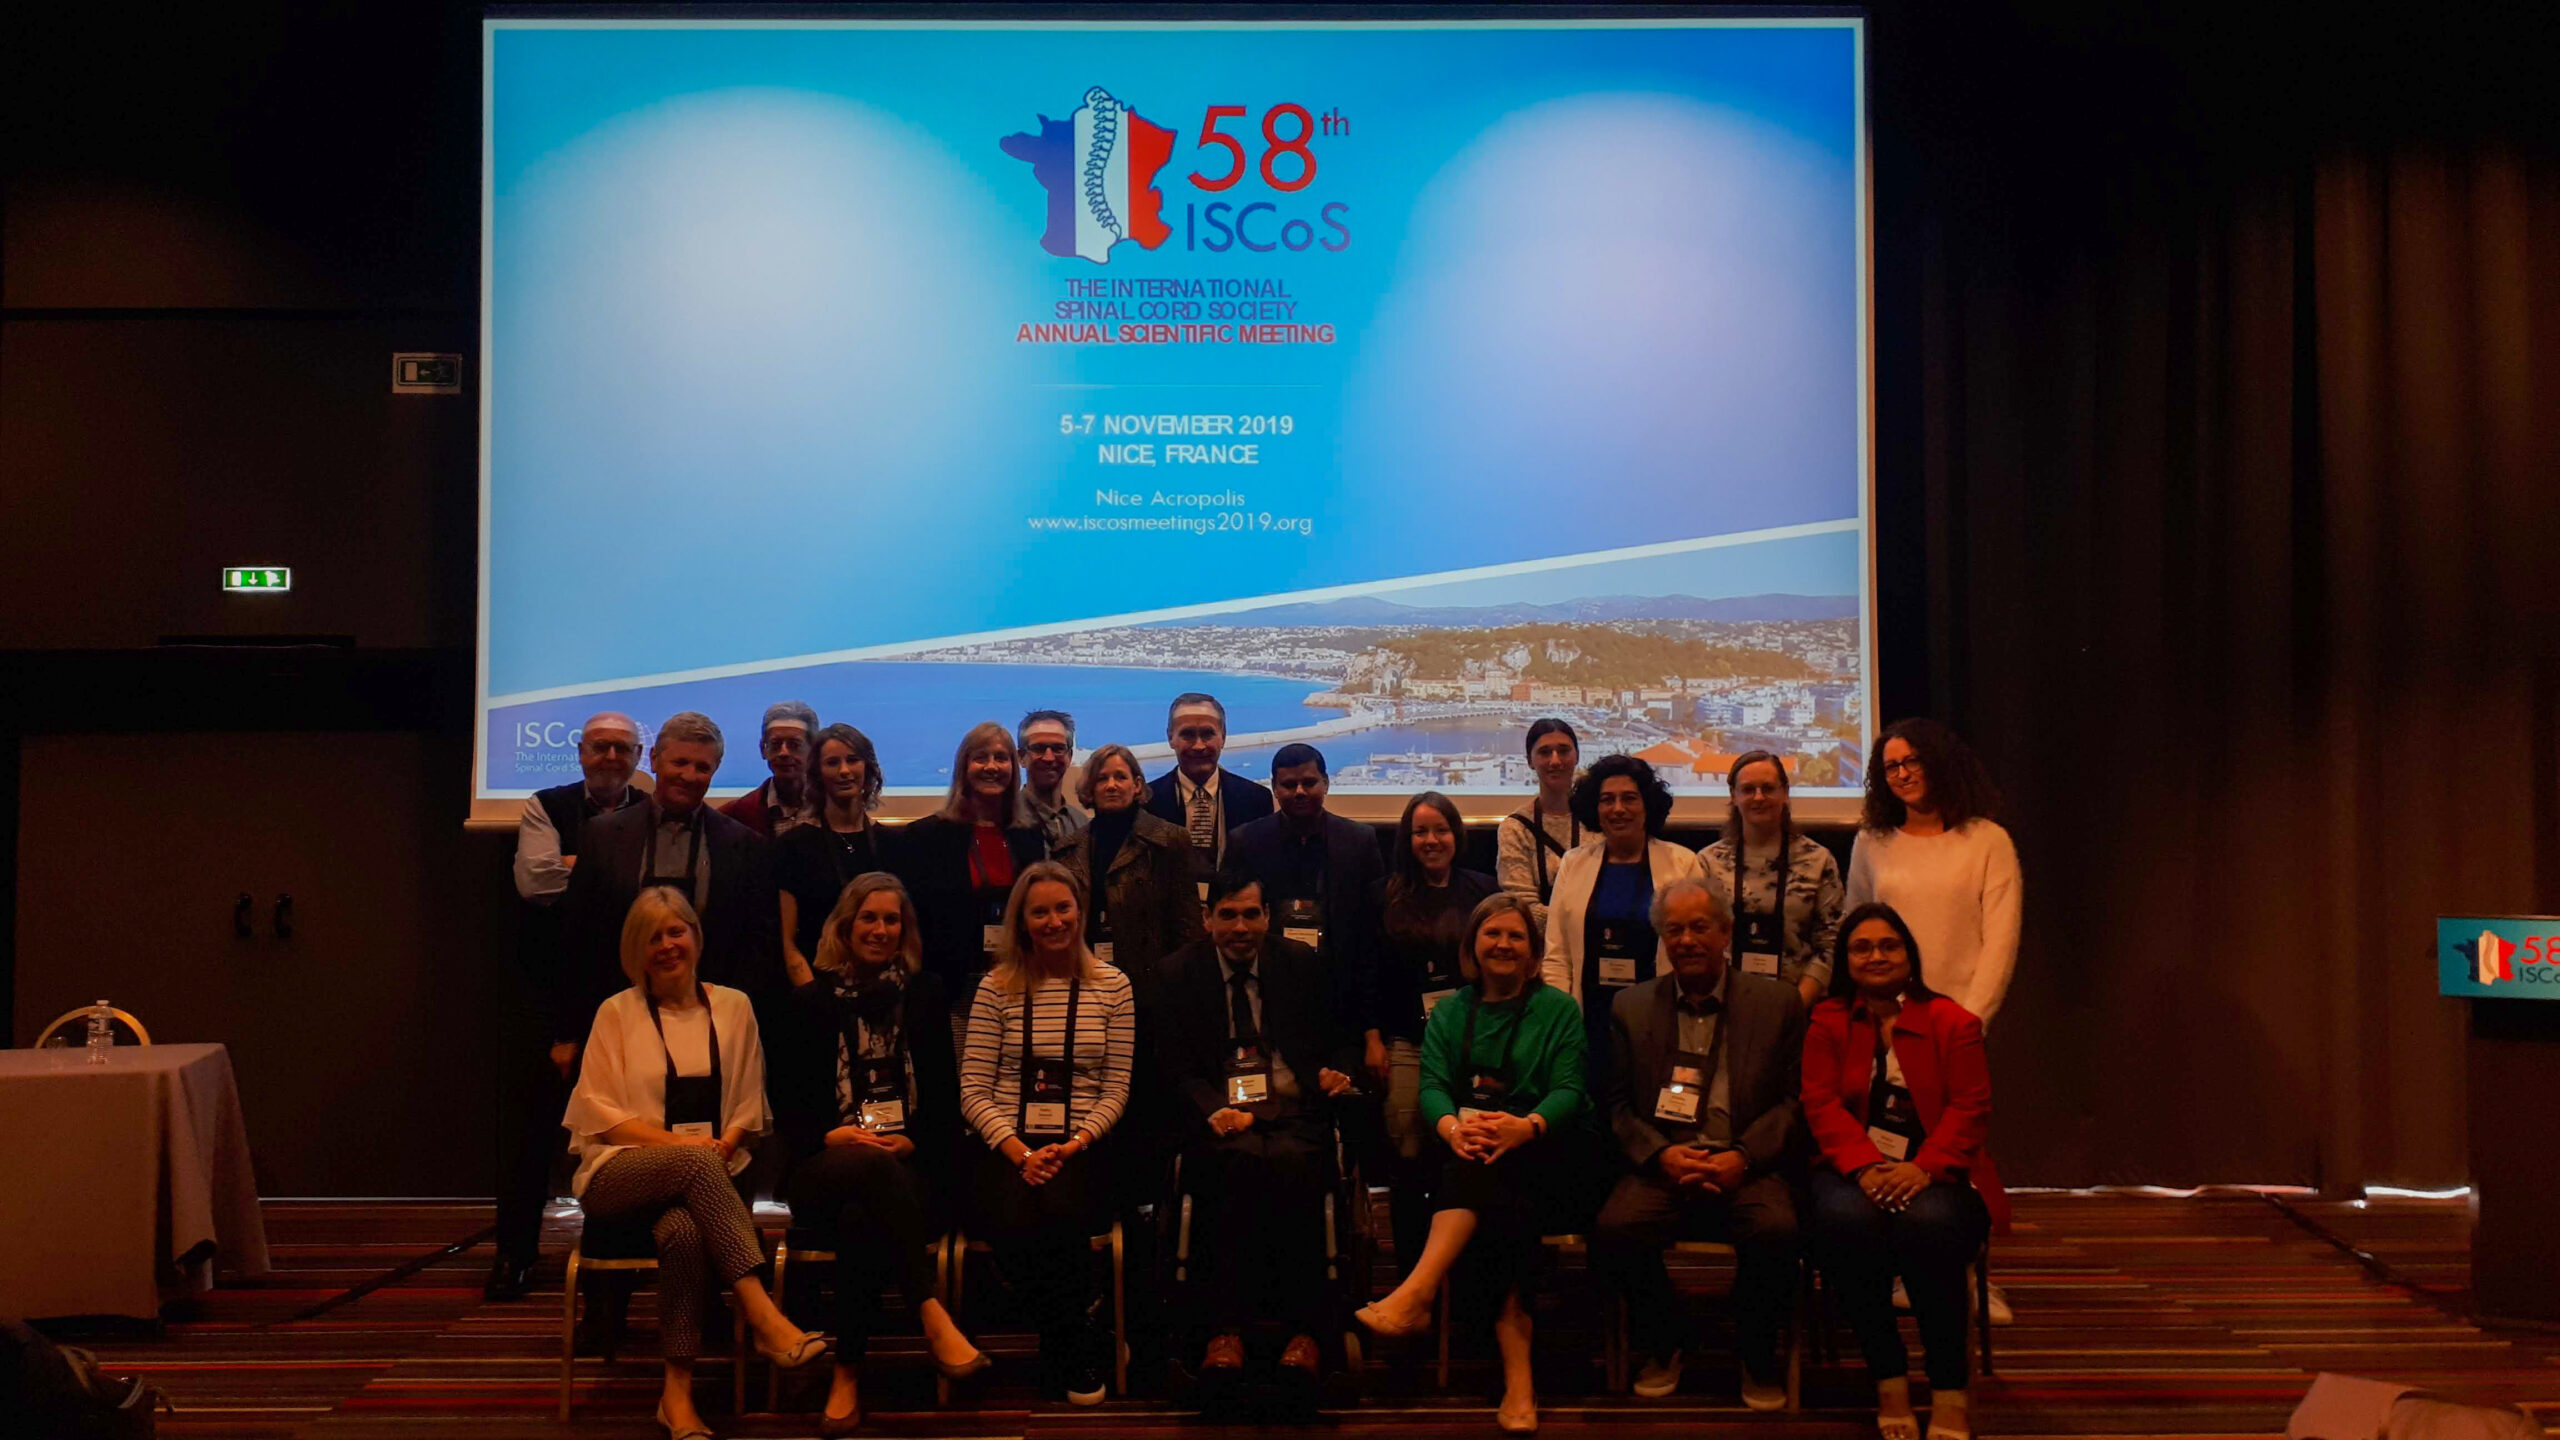 ESPA Nice Conference in 2019